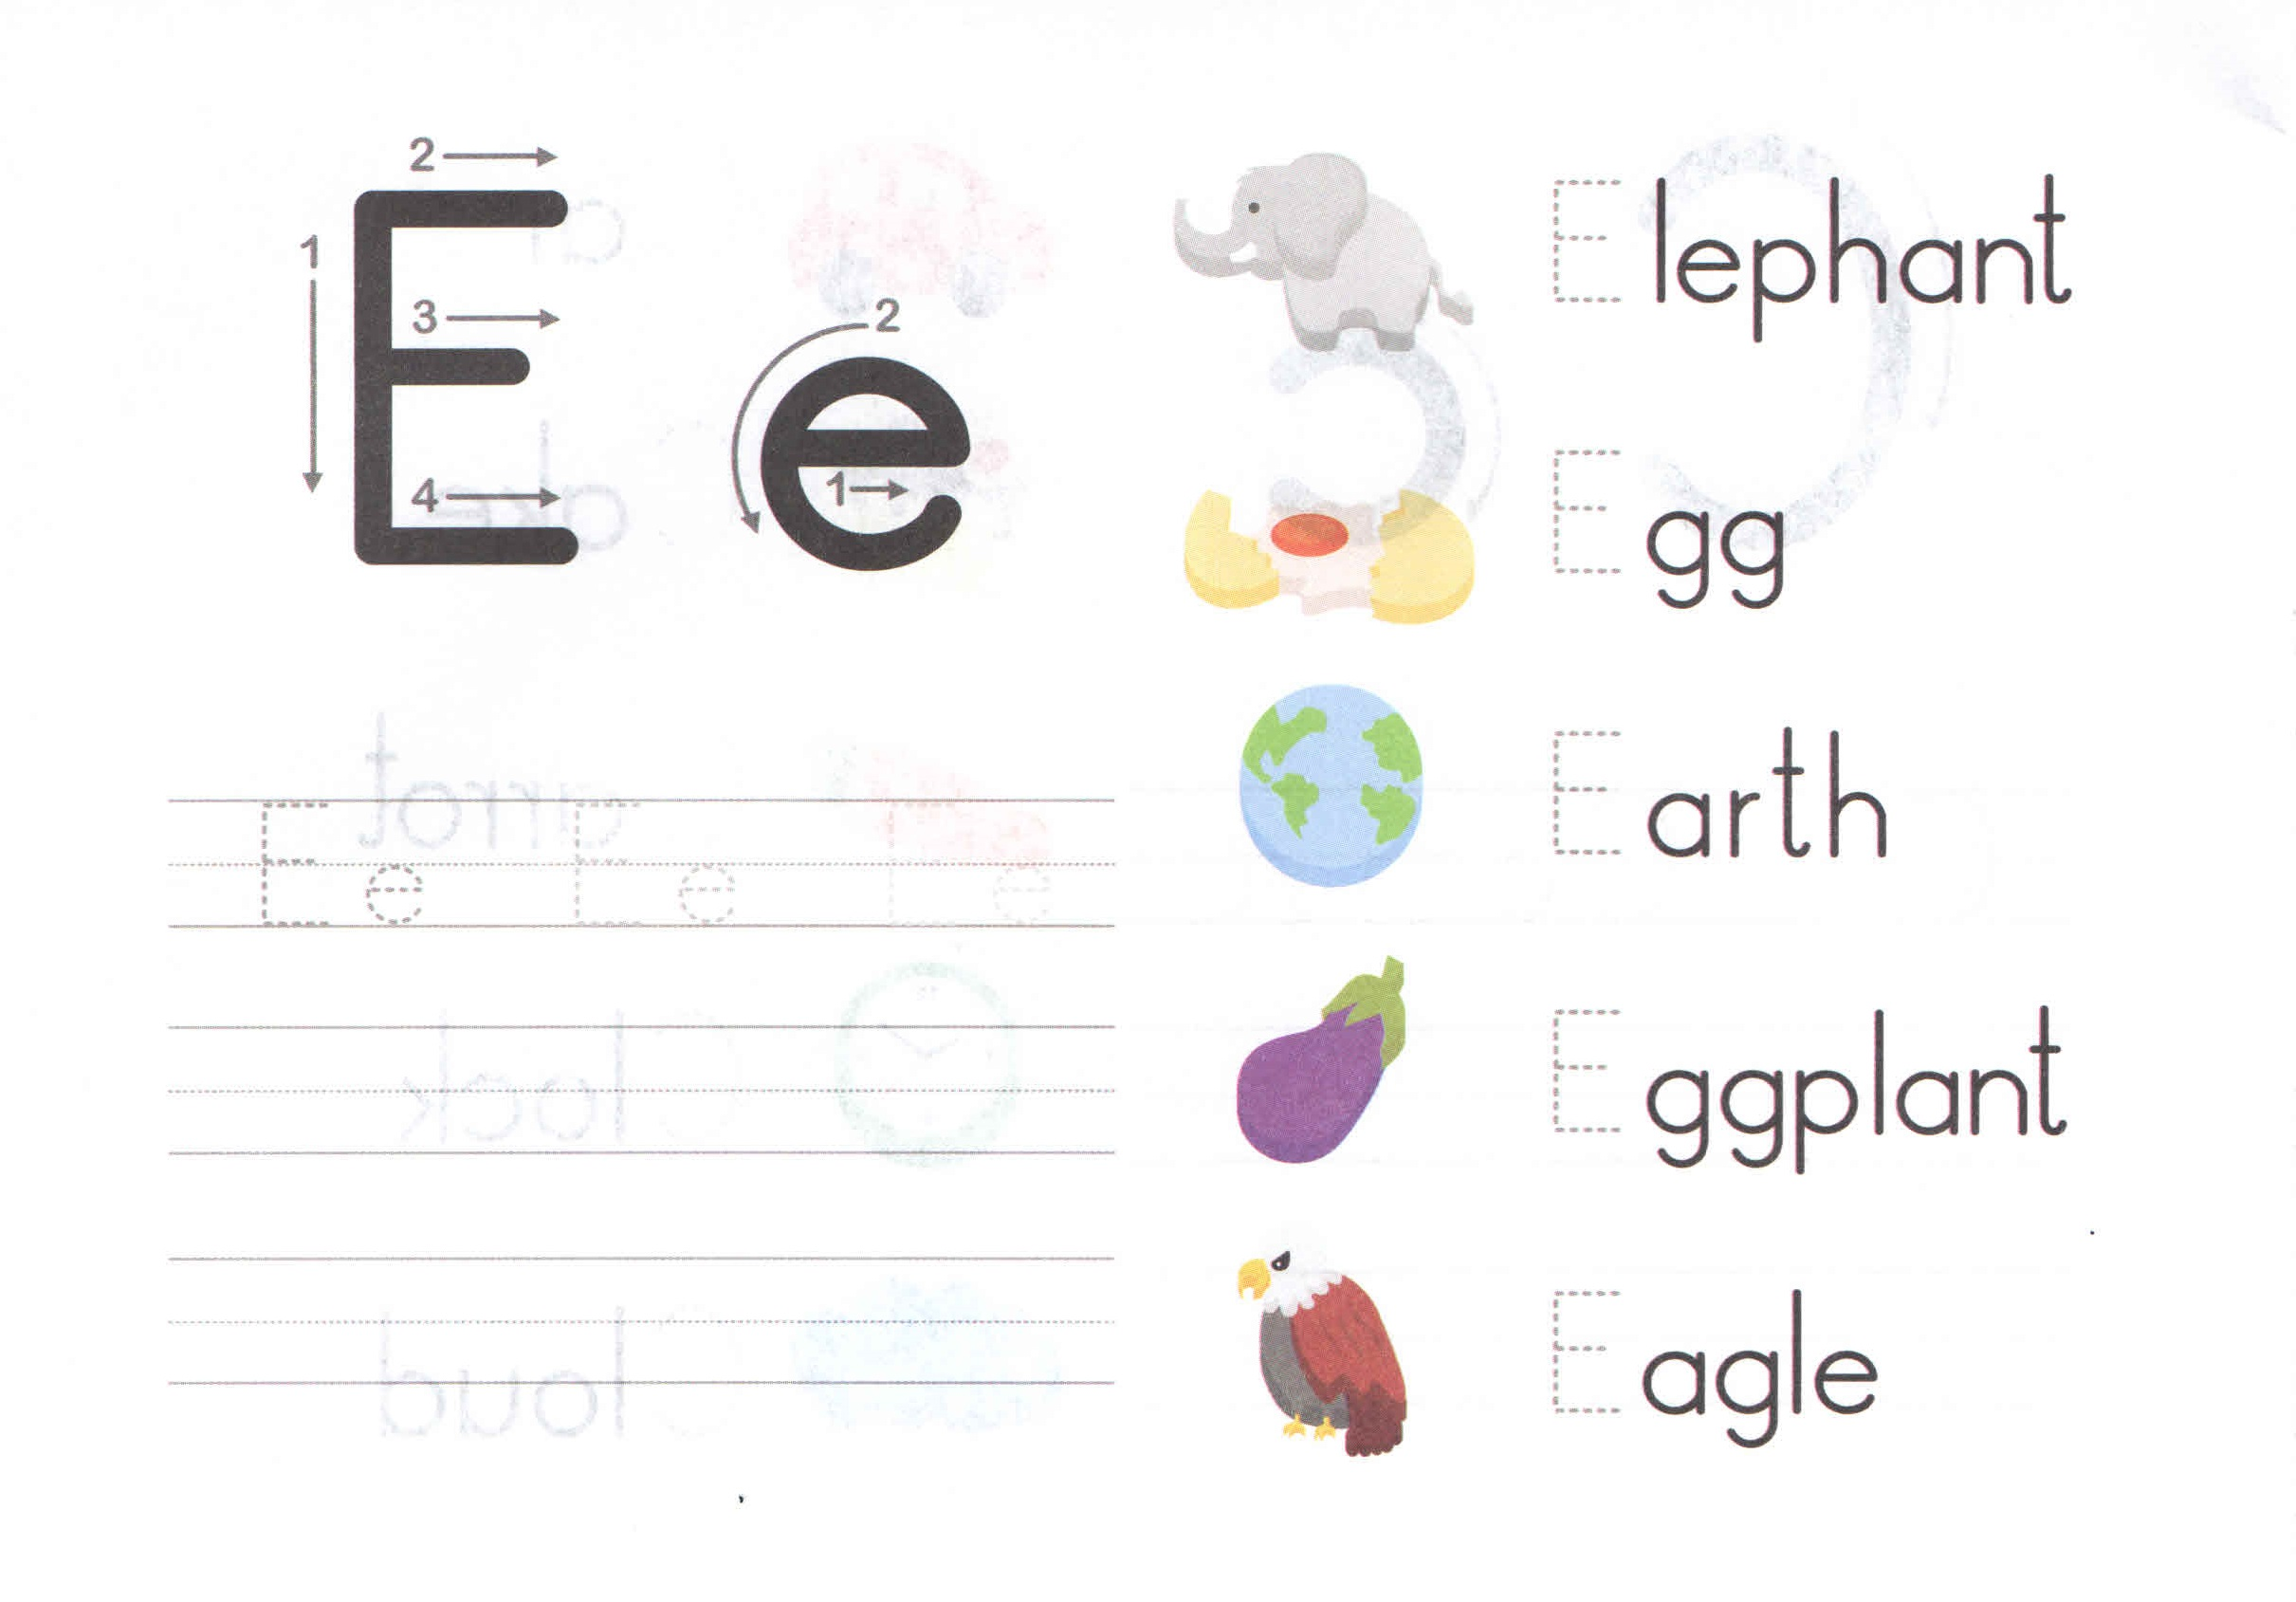 alphabetcapitalandsmallletterEeworksheetforkids – E Worksheets for Kindergarten